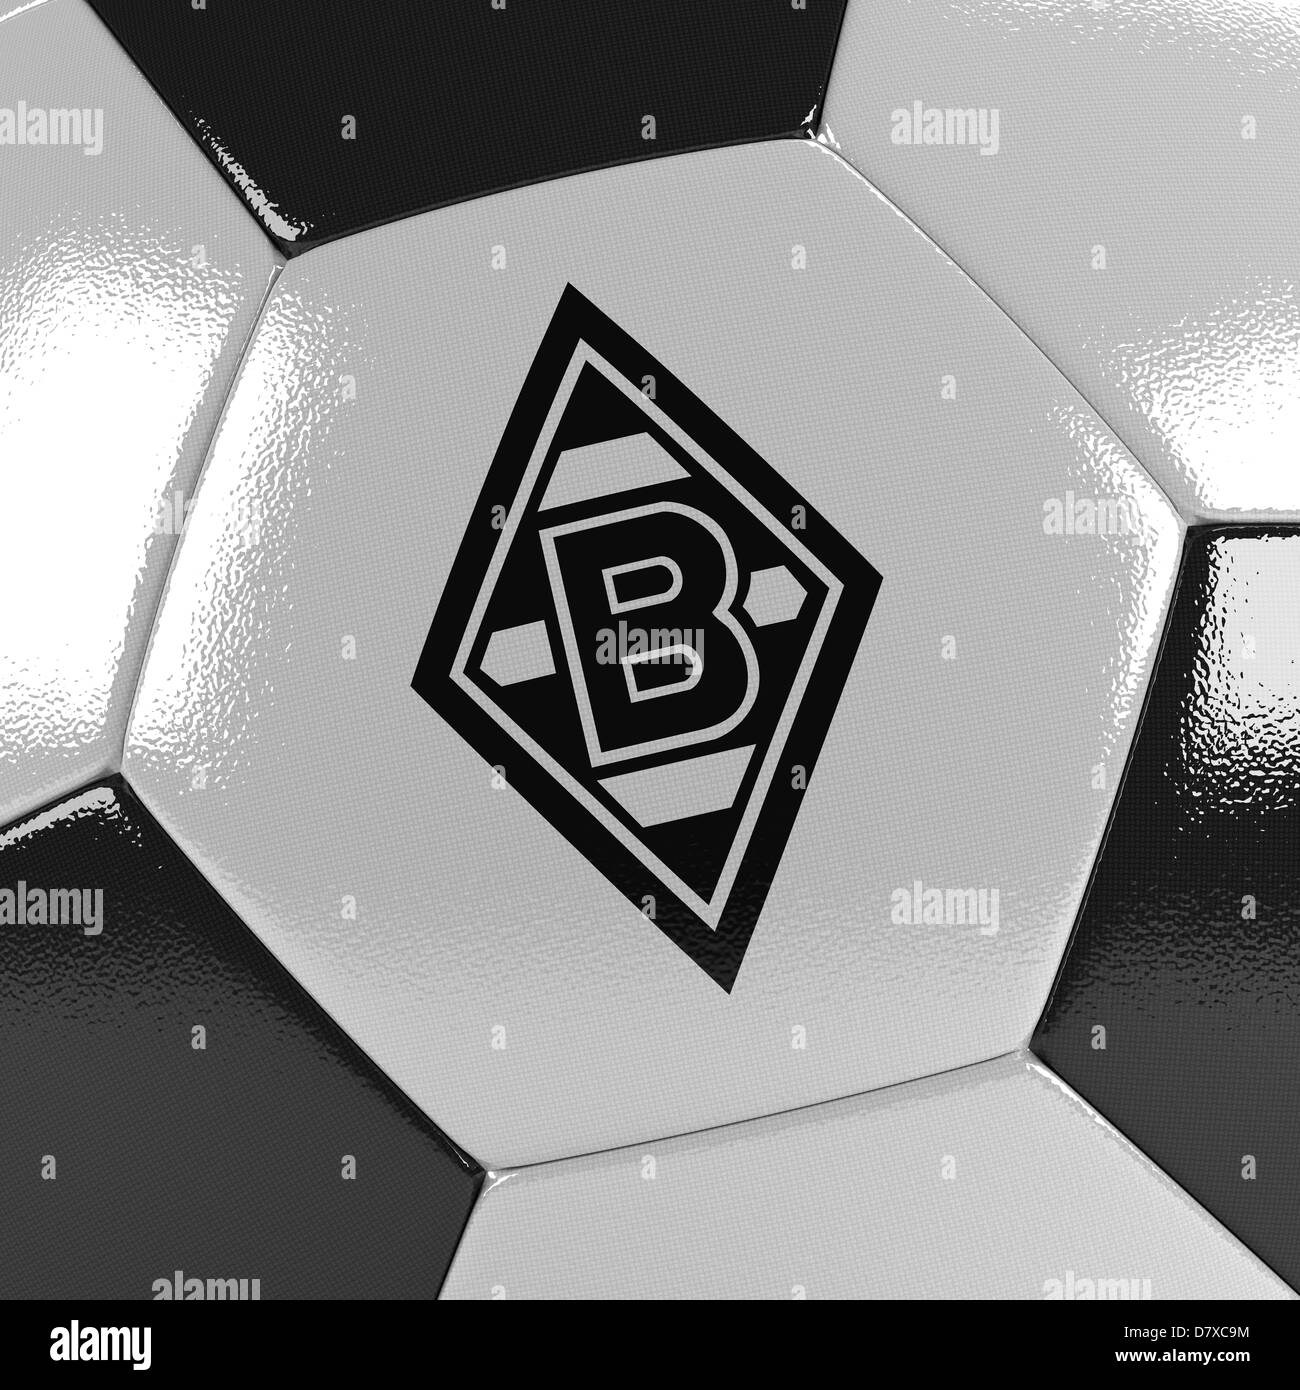 VfL Borussia Mönchengladbach close up - Stock Image